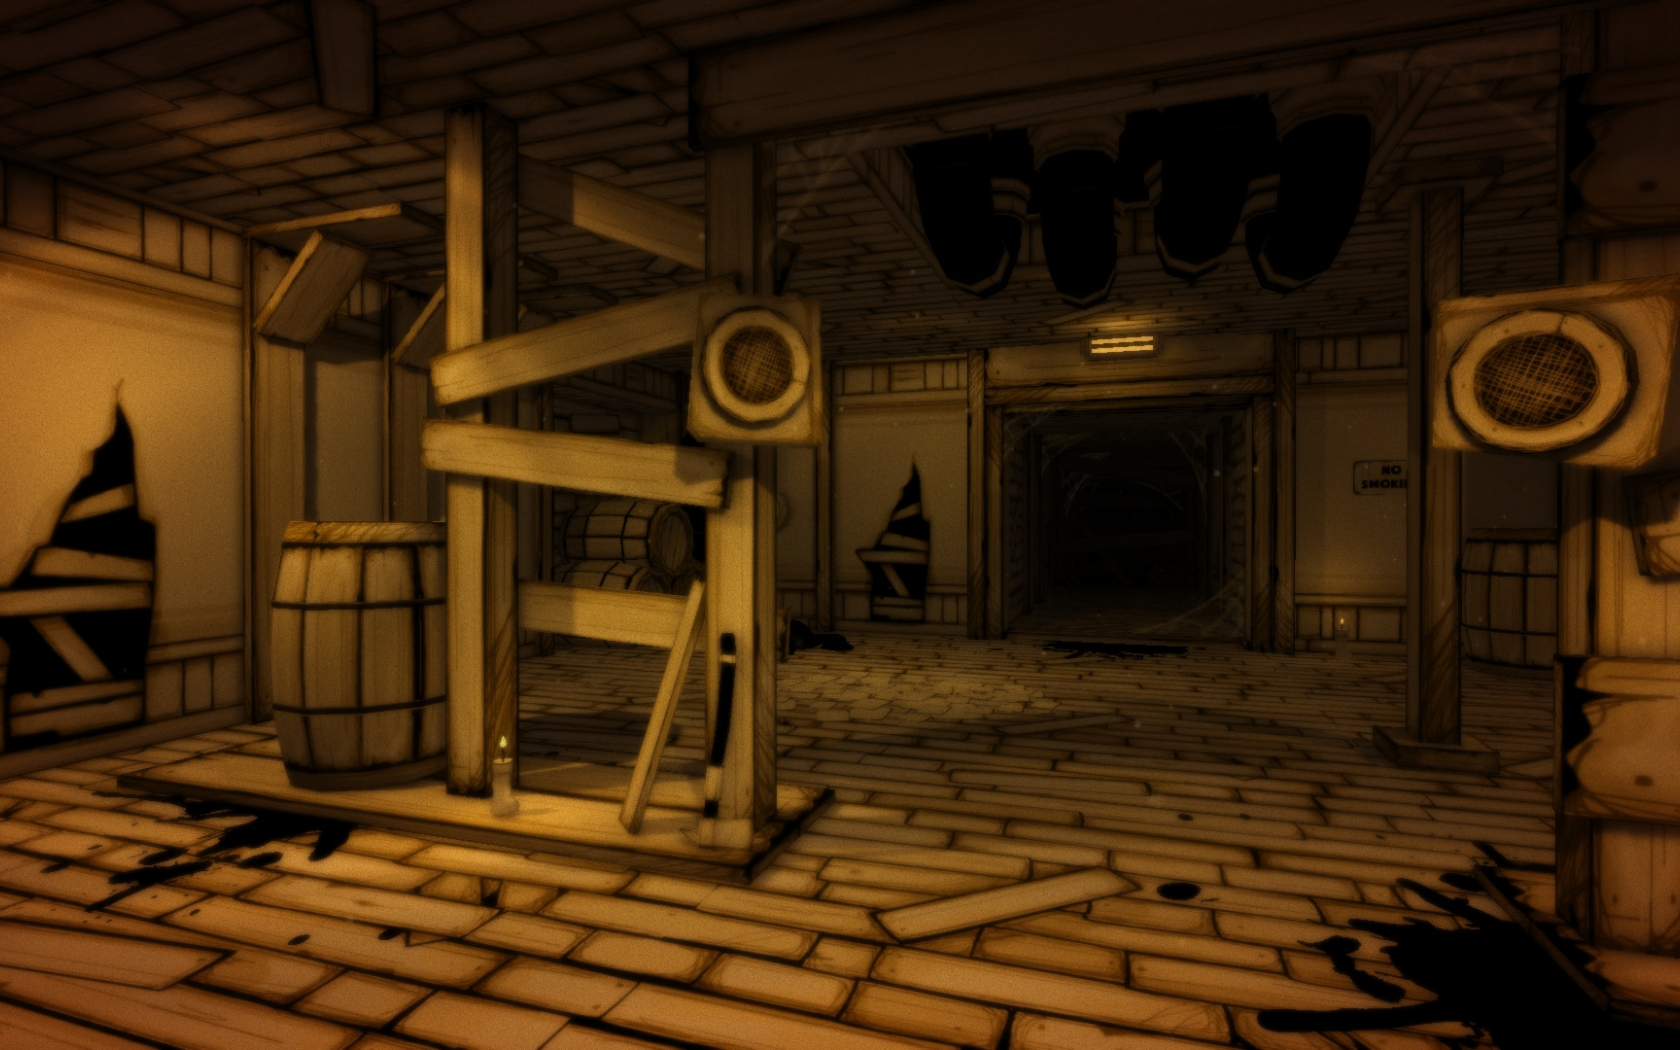 Bendy And The Ink Machine Backgrounds Posted By Christopher Peltier